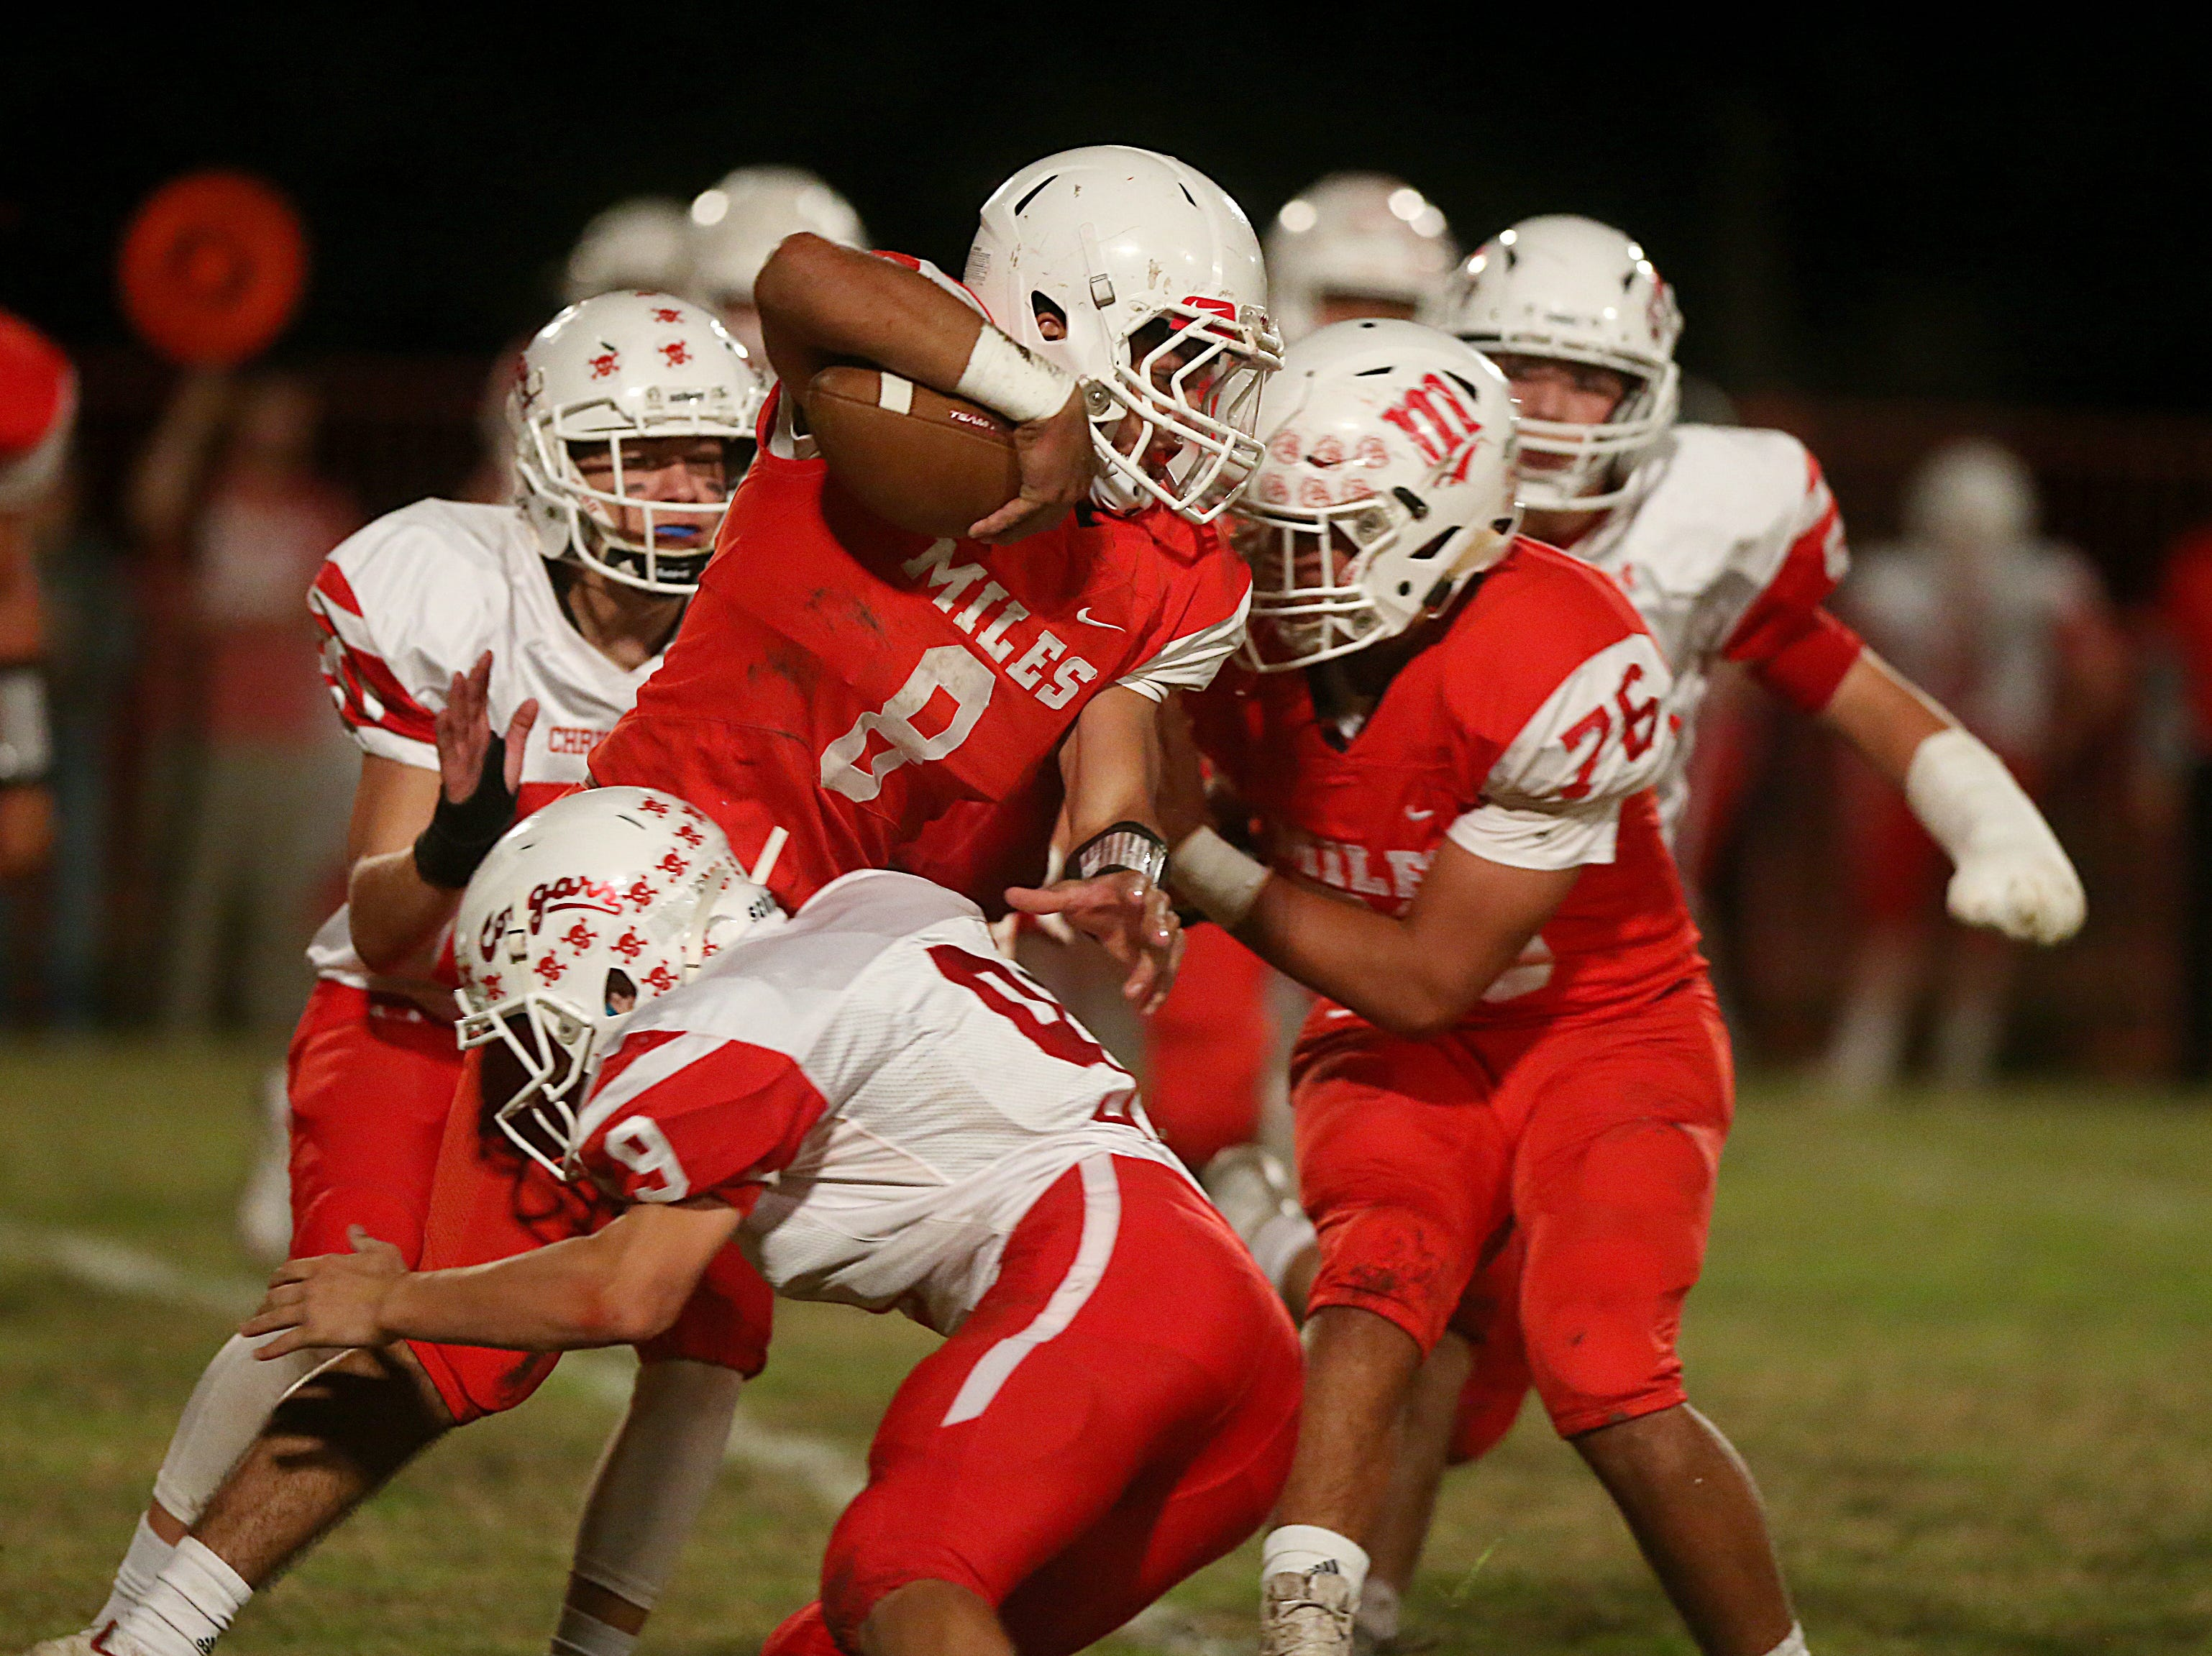 Miles' Jared Flores (#8) is tackled by Christoval's Luke Jolly (#9) Friday, Nov. 2, 2018 during their game in Miles.